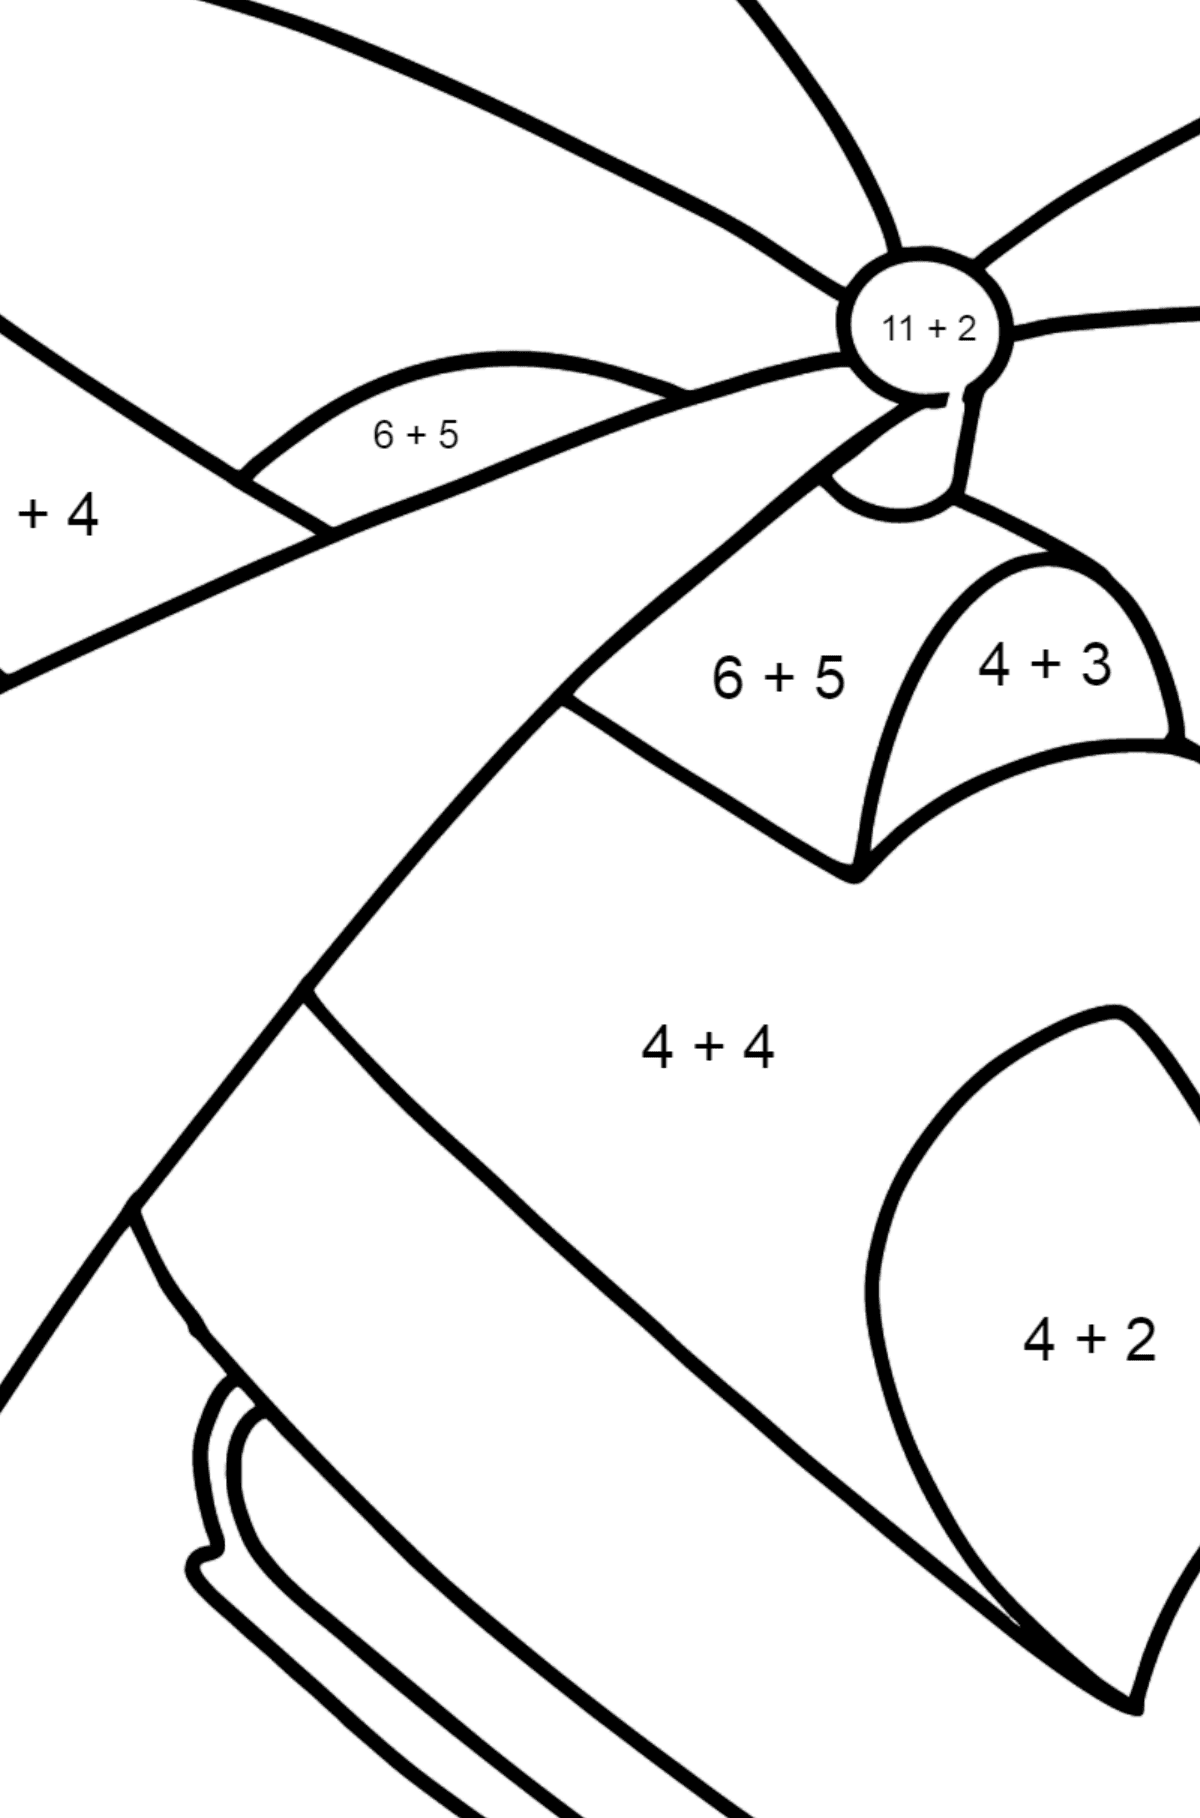 Little Helicopter coloring page - Math Coloring - Addition for Kids